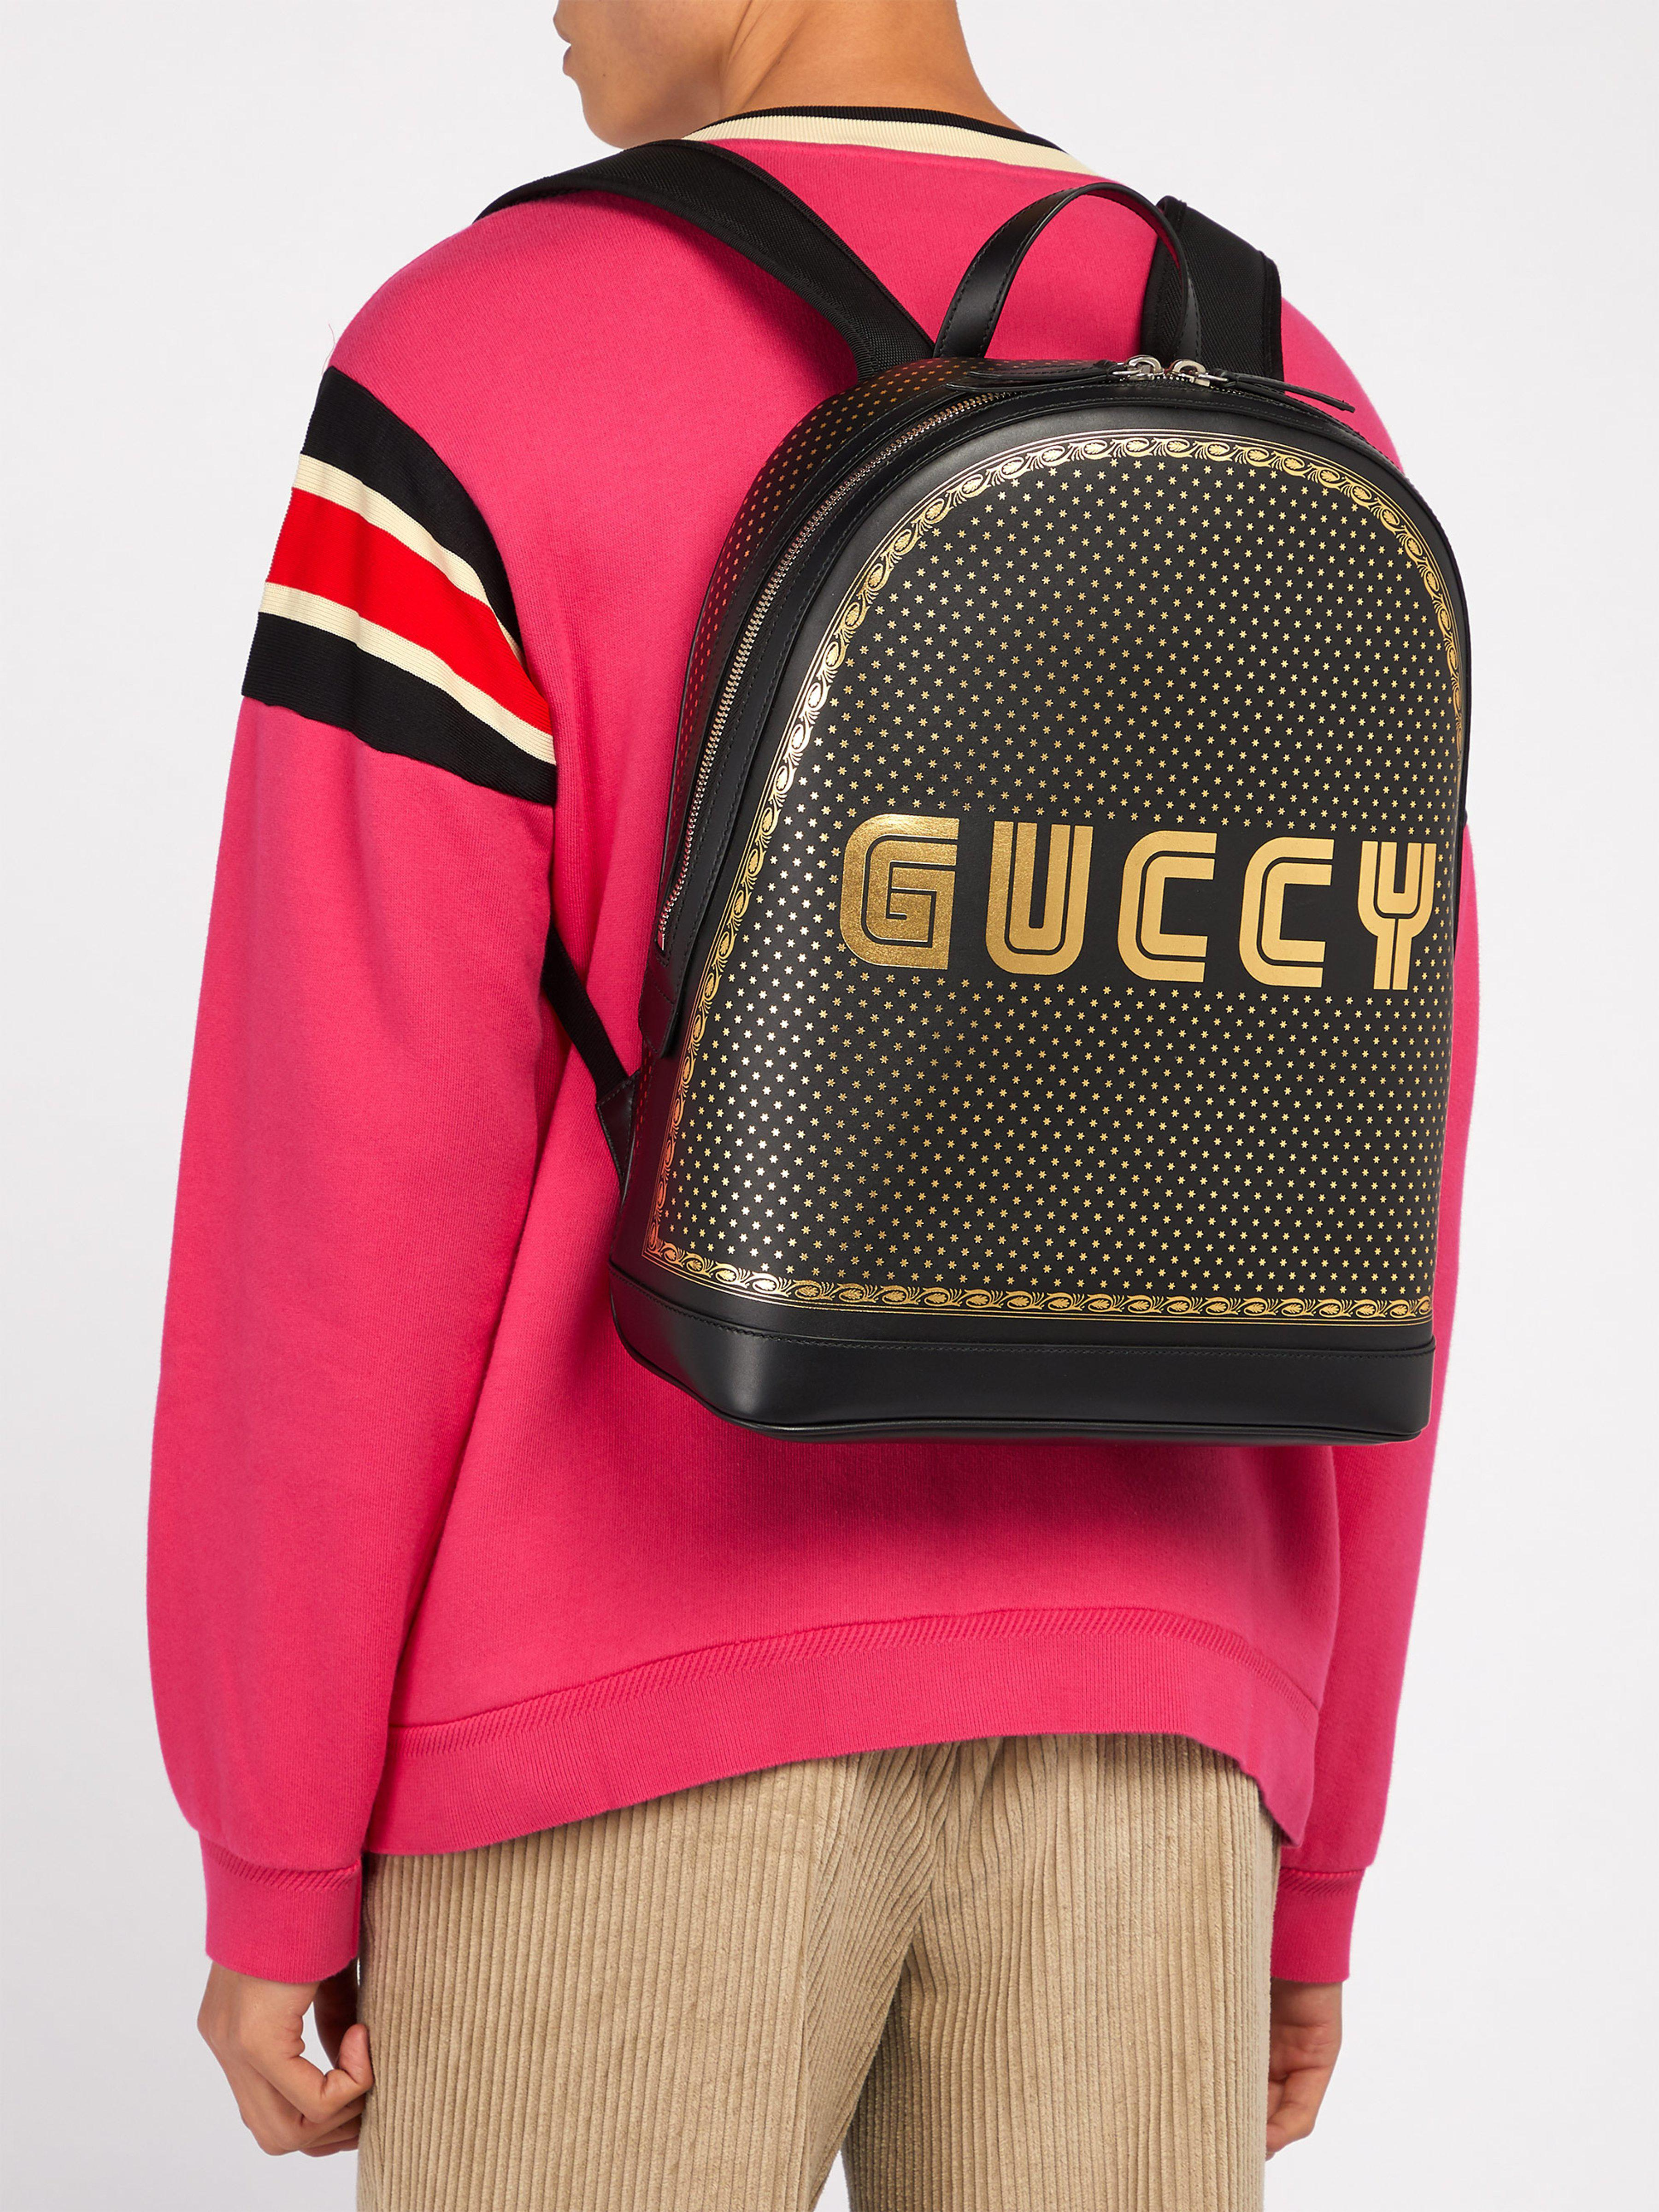 Gucci - Black Guccy Leather Backpack for Men - Lyst. View fullscreen 93b9f05a788a7